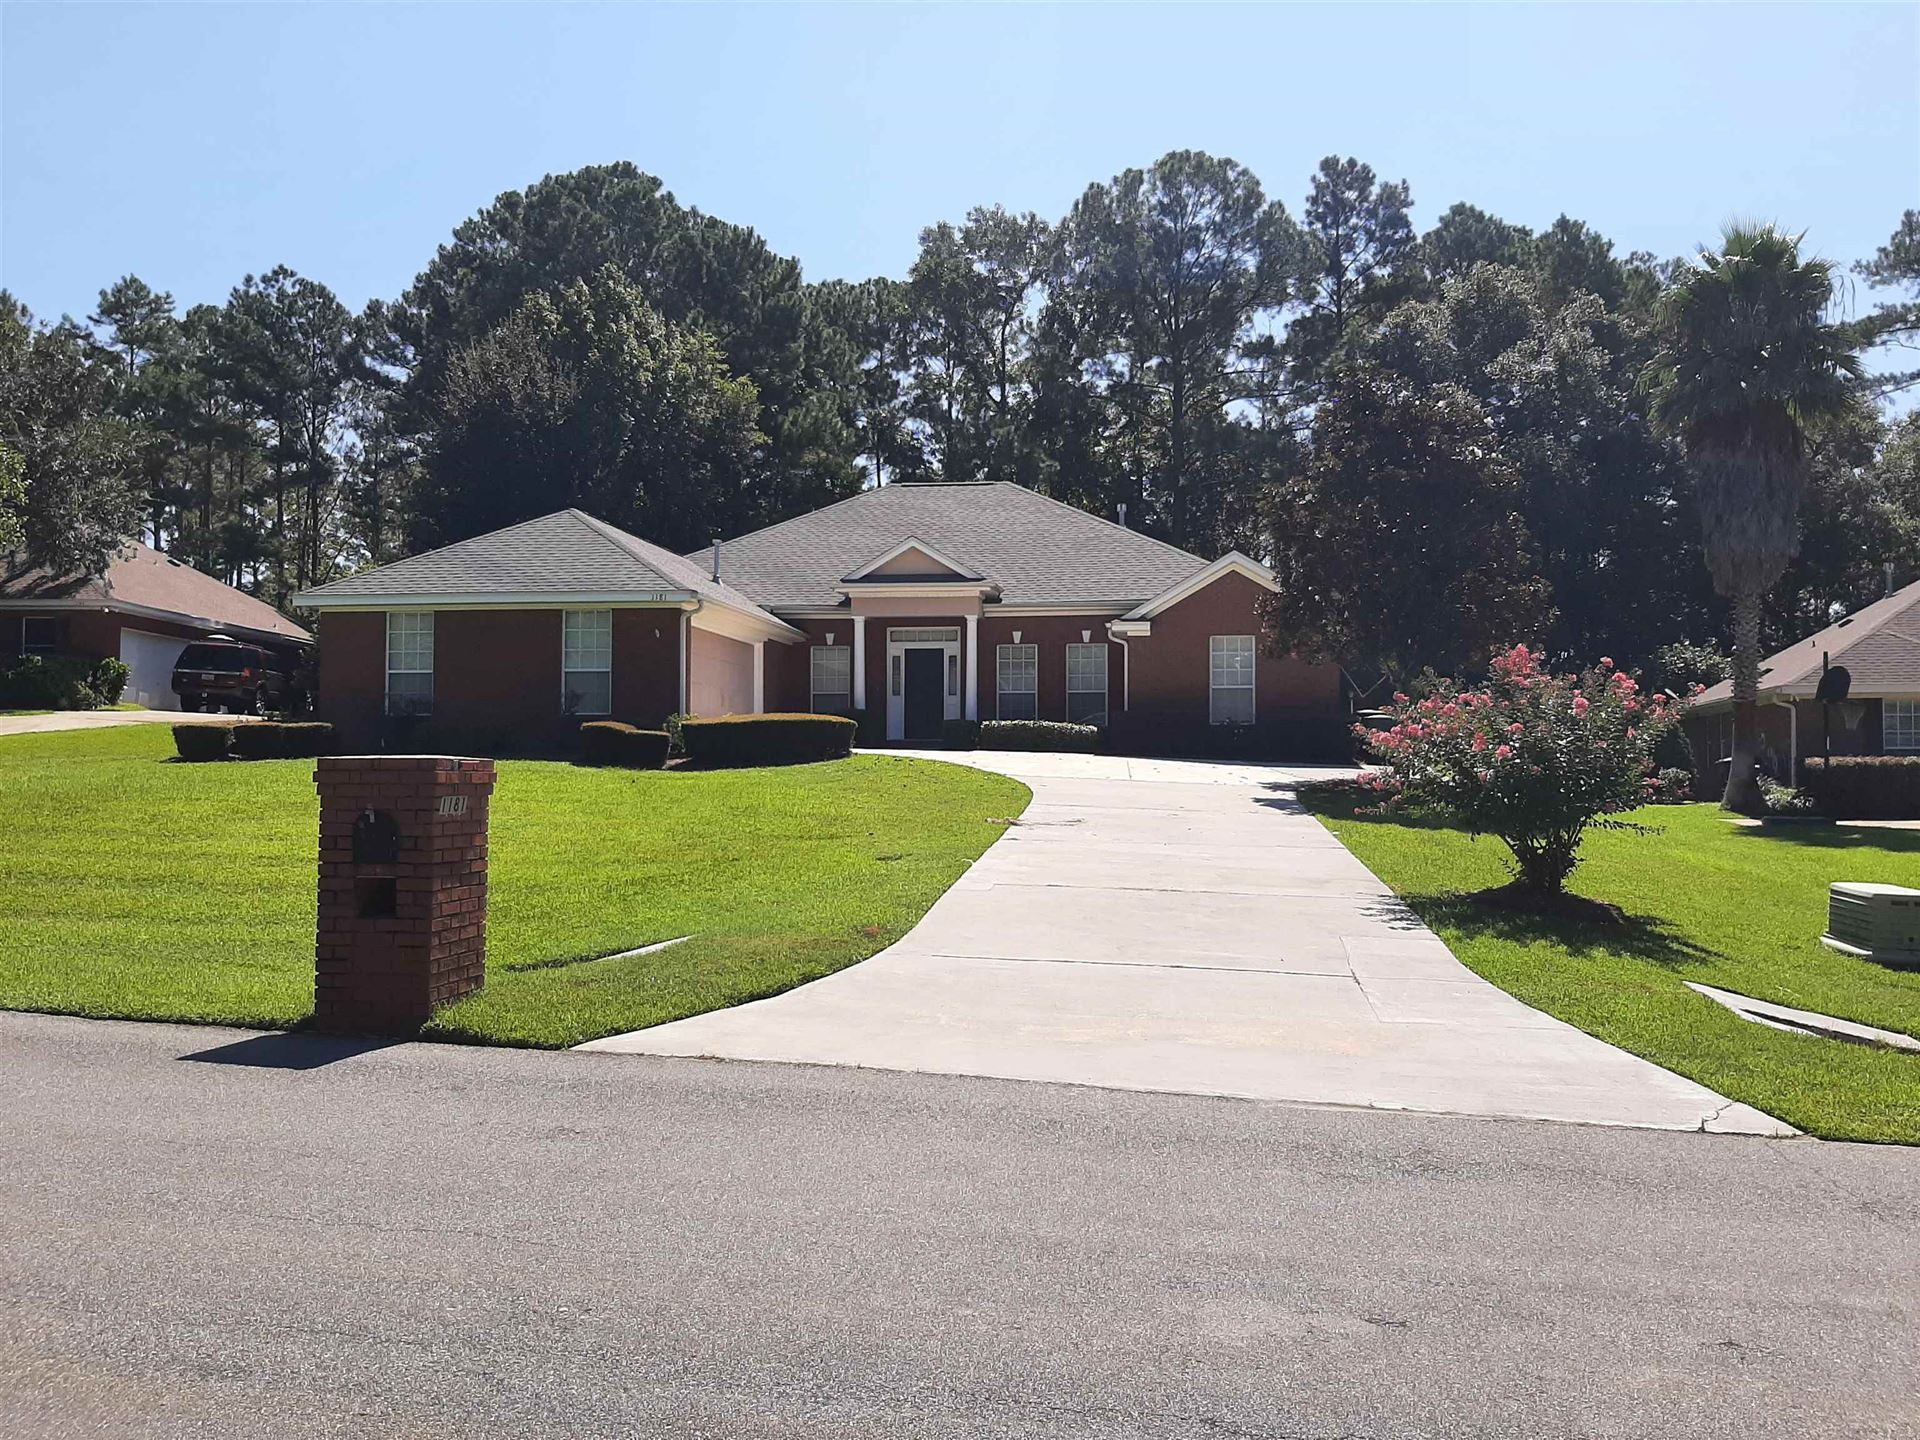 1181 Ronds Pointe E Drive, Tallahassee, FL 32312 - MLS#: 336415